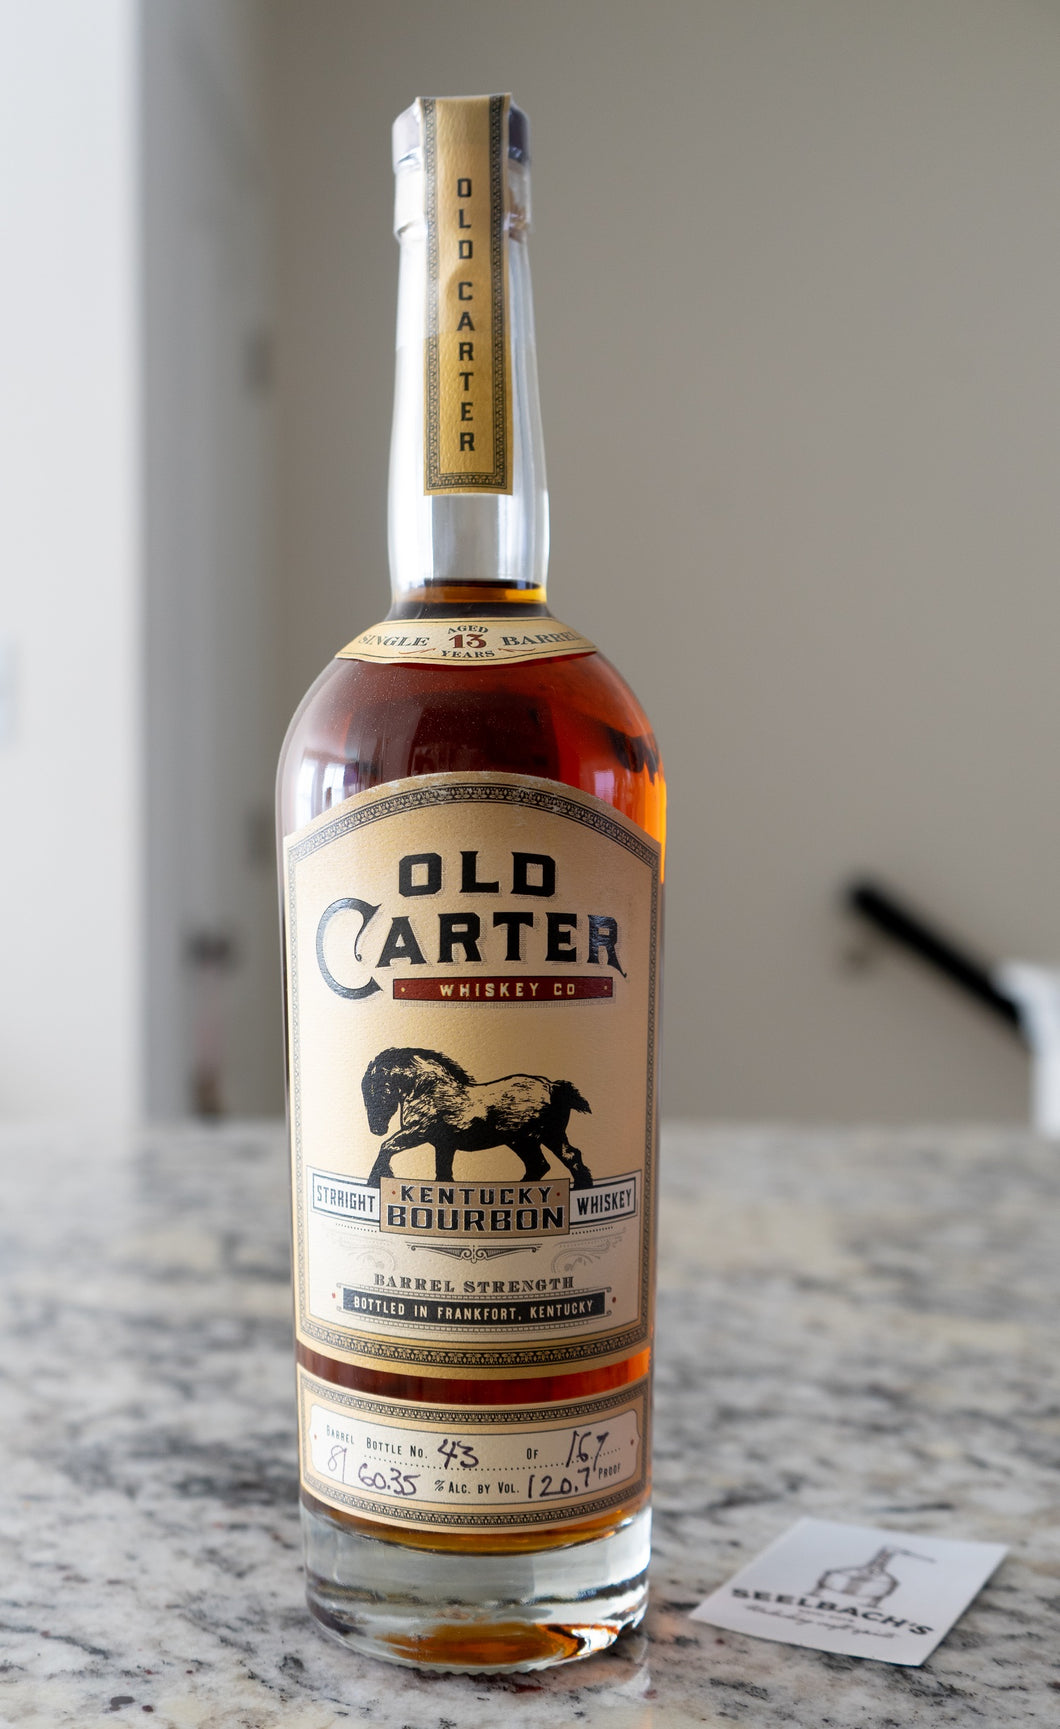 Old Carter KY Straight Bourbon Single Barrel 13YR #81